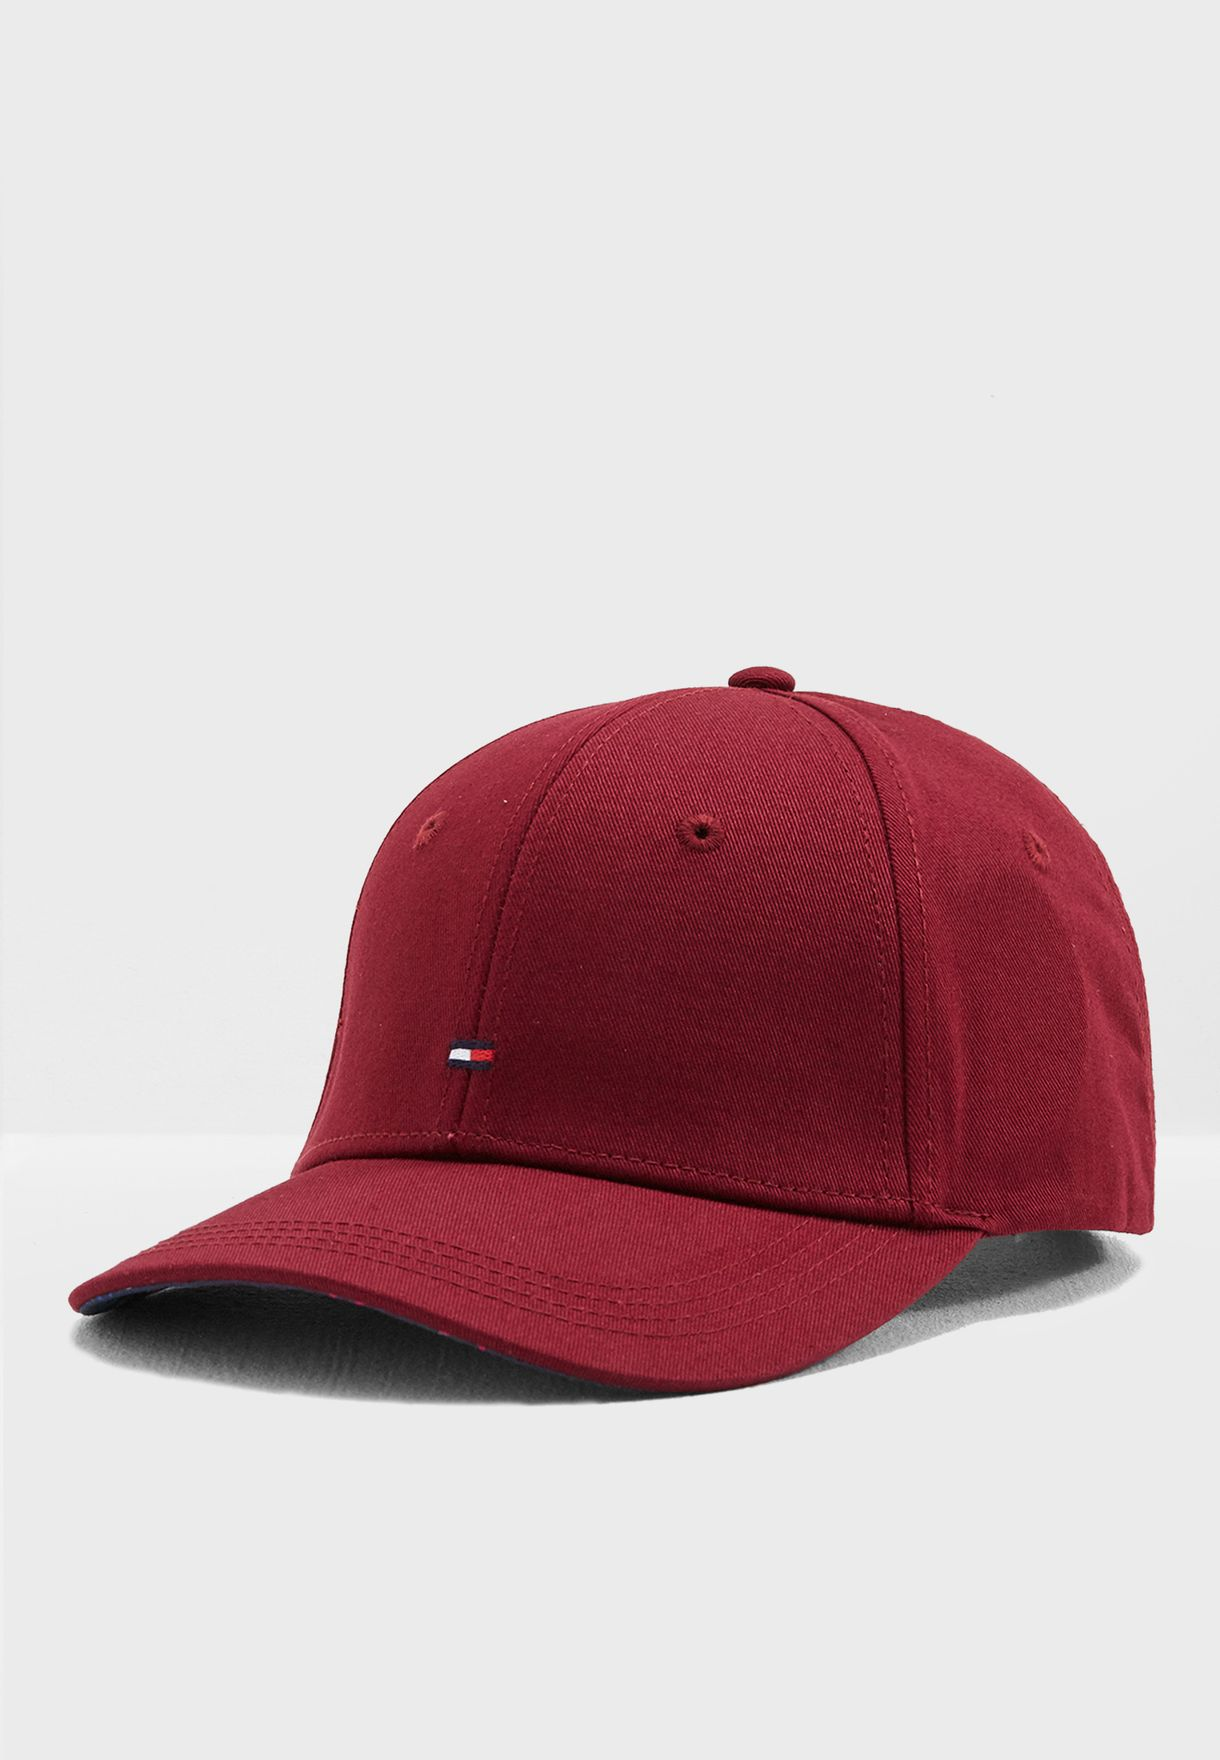 91f88d13 Shop Tommy Hilfiger burgundy Classic Cap AW0AW06020 for Women in UAE ...